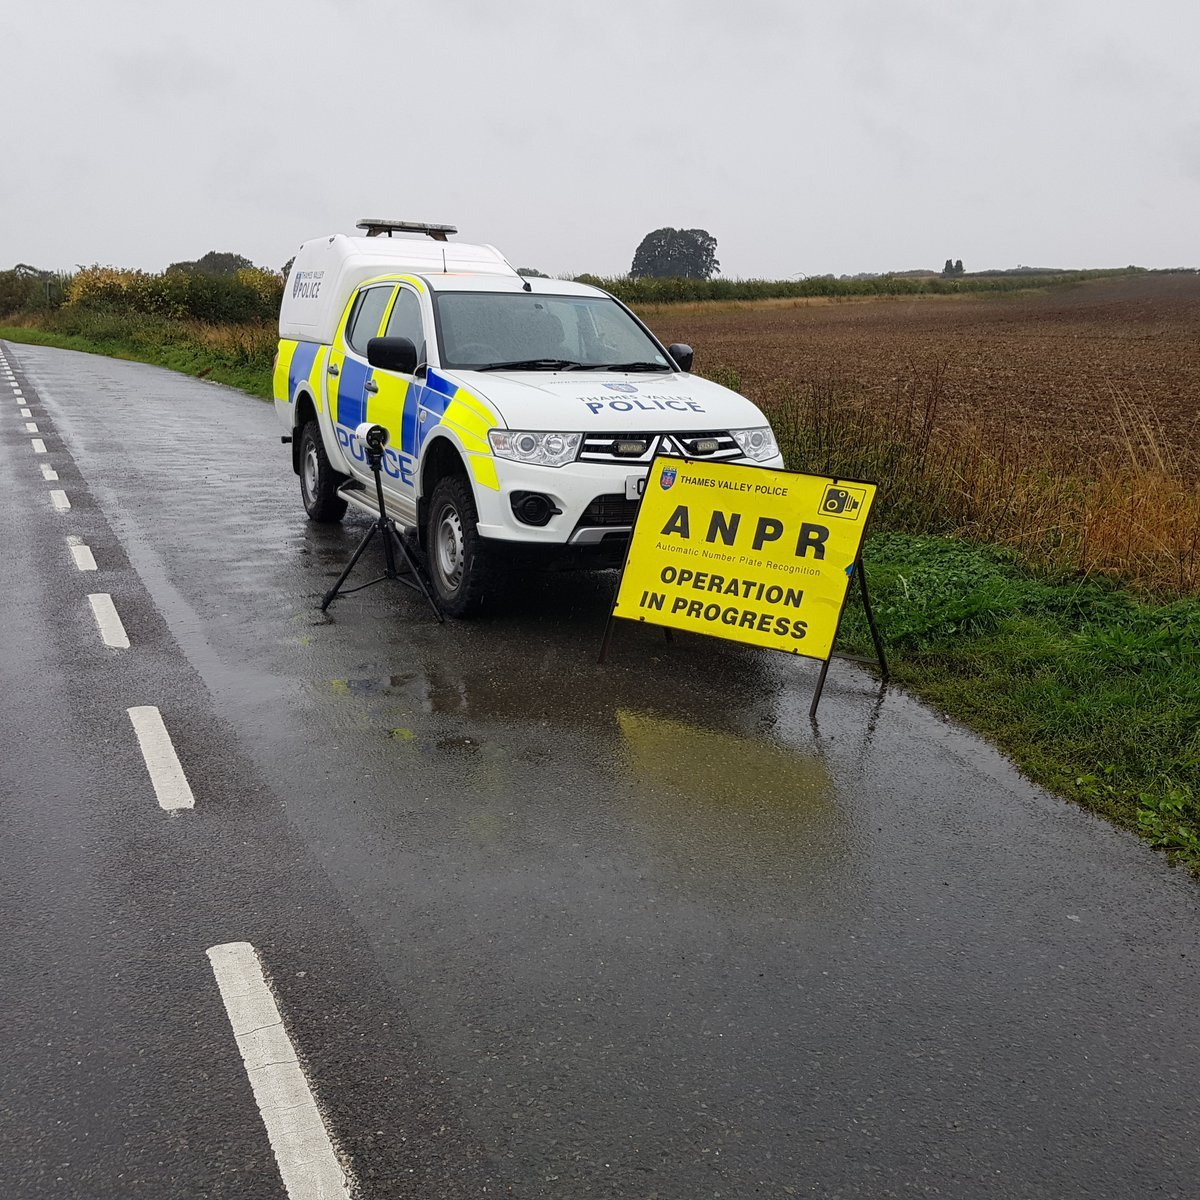 TVP Kidlington shared this image of police patrolling the countryside to catch hare coursers